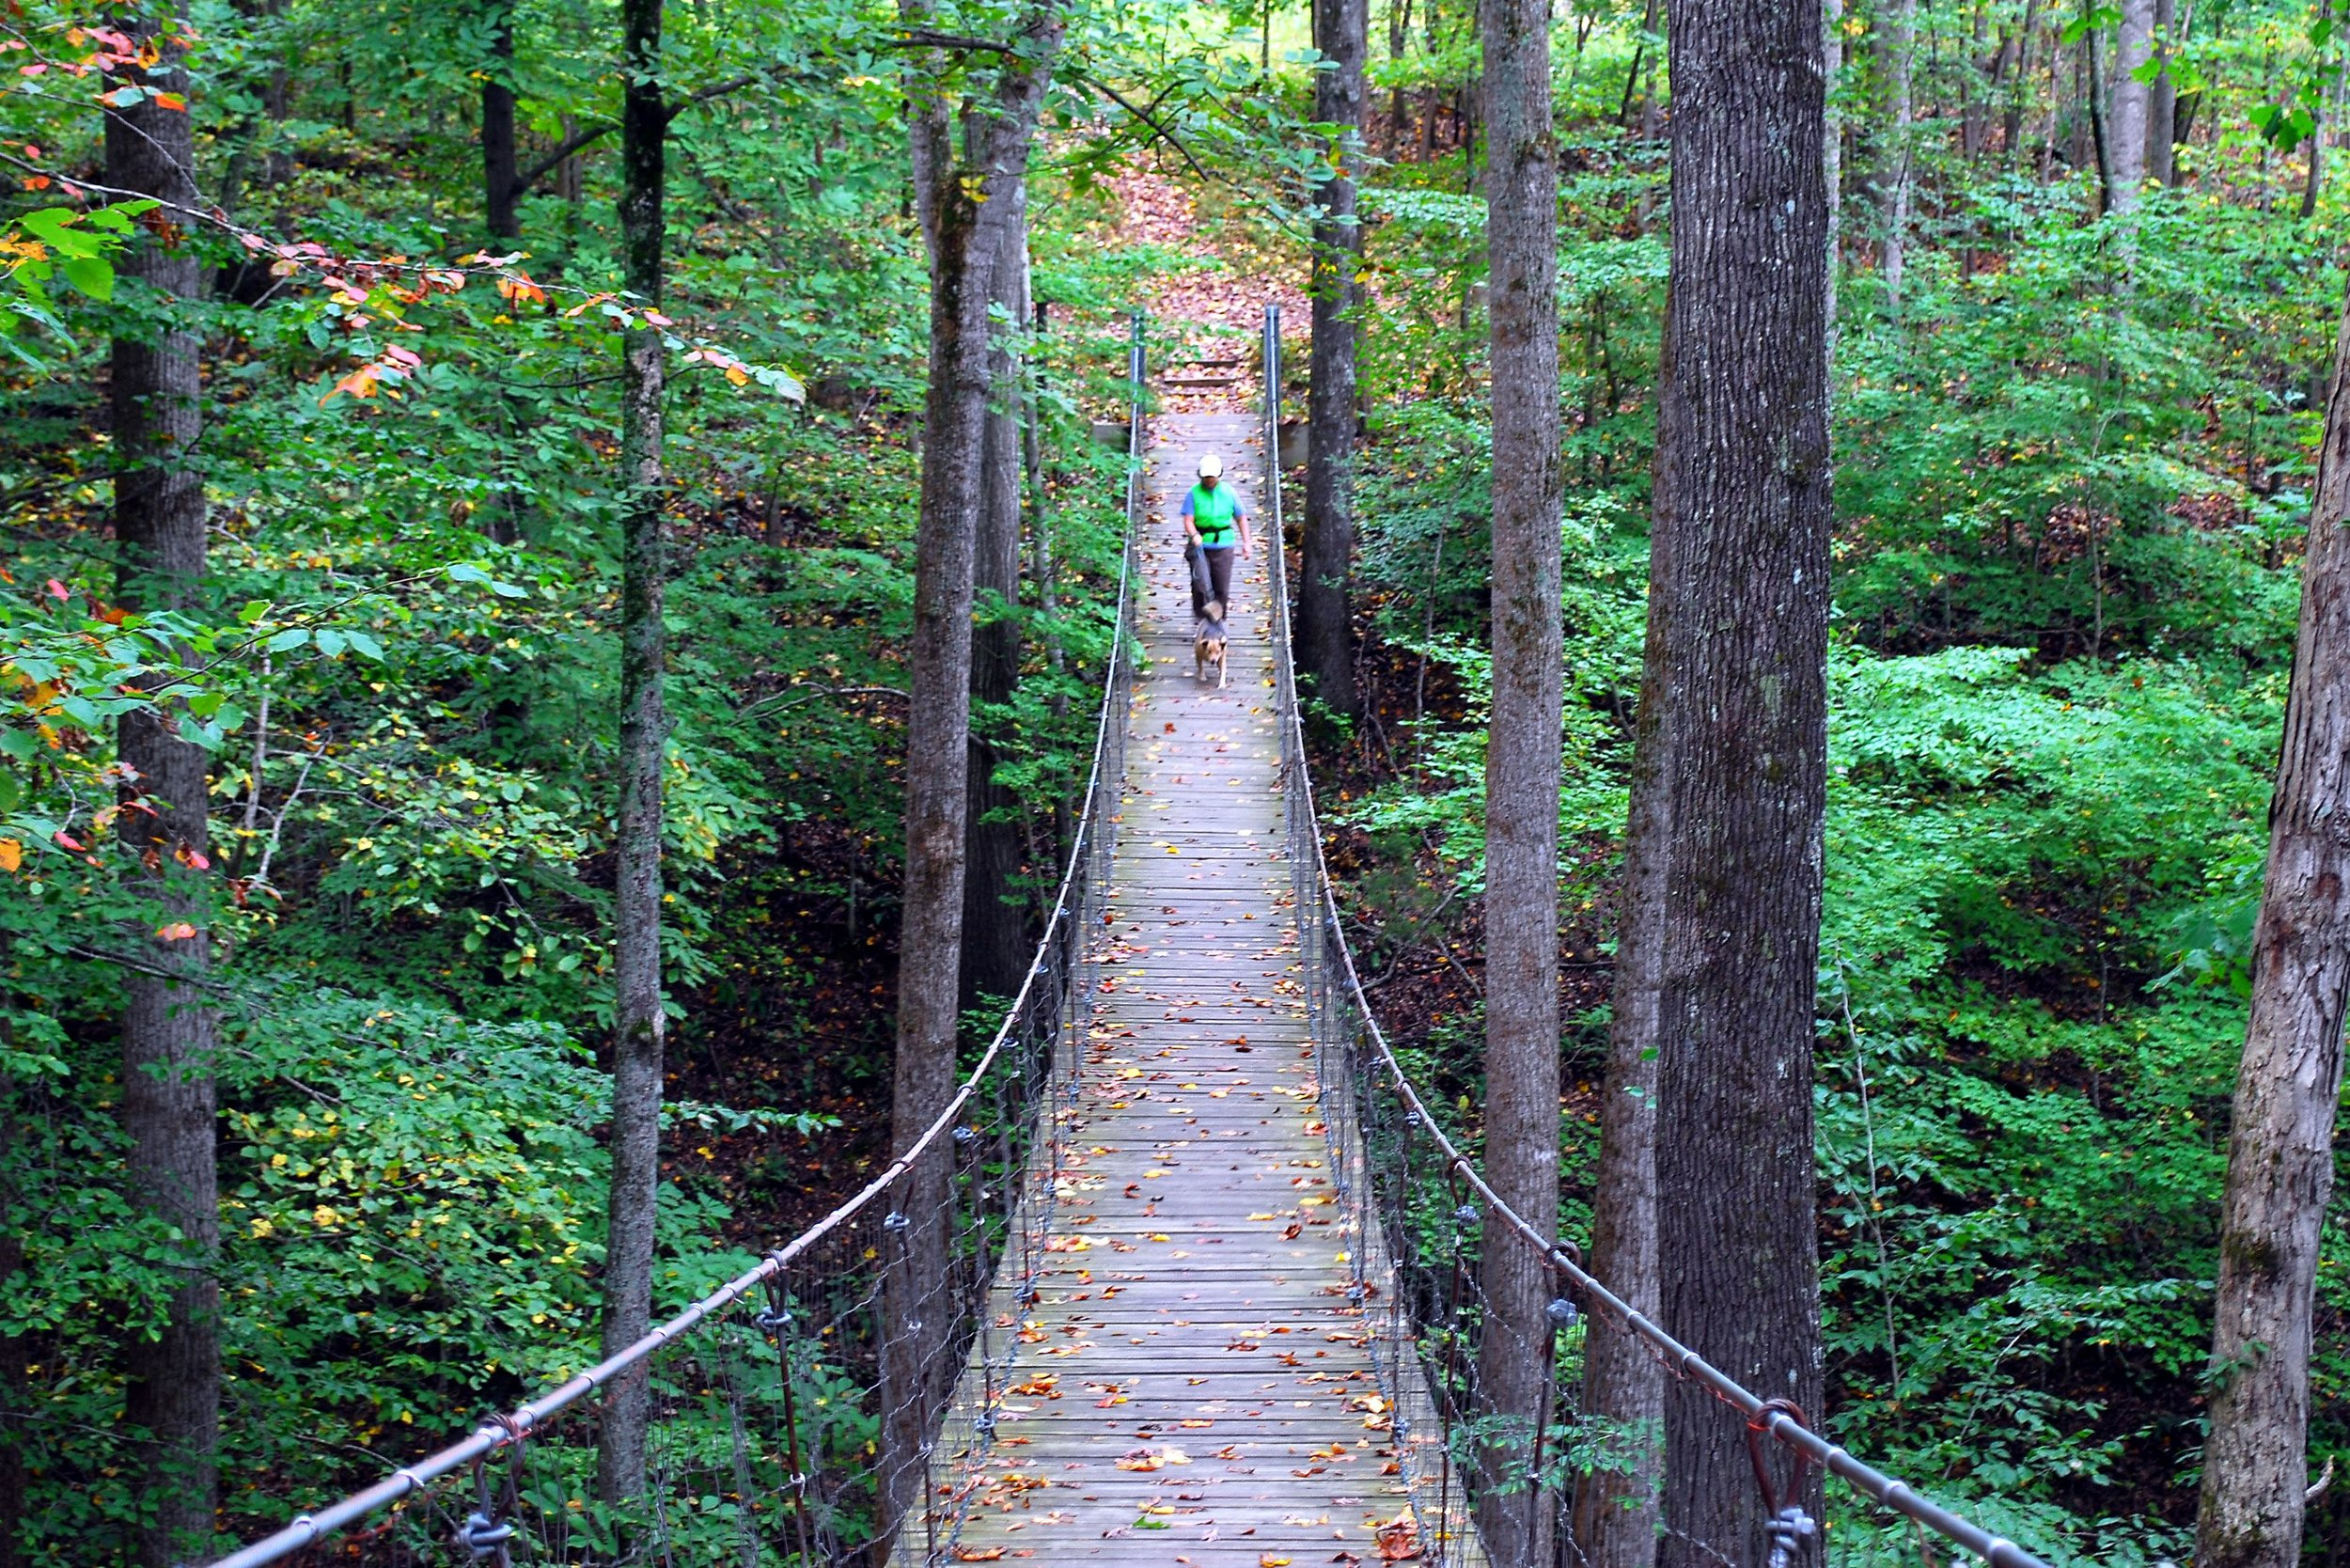 One of the suspension bridges on the Lost Creek Overlook Trail. (Photo: Bob Butters)